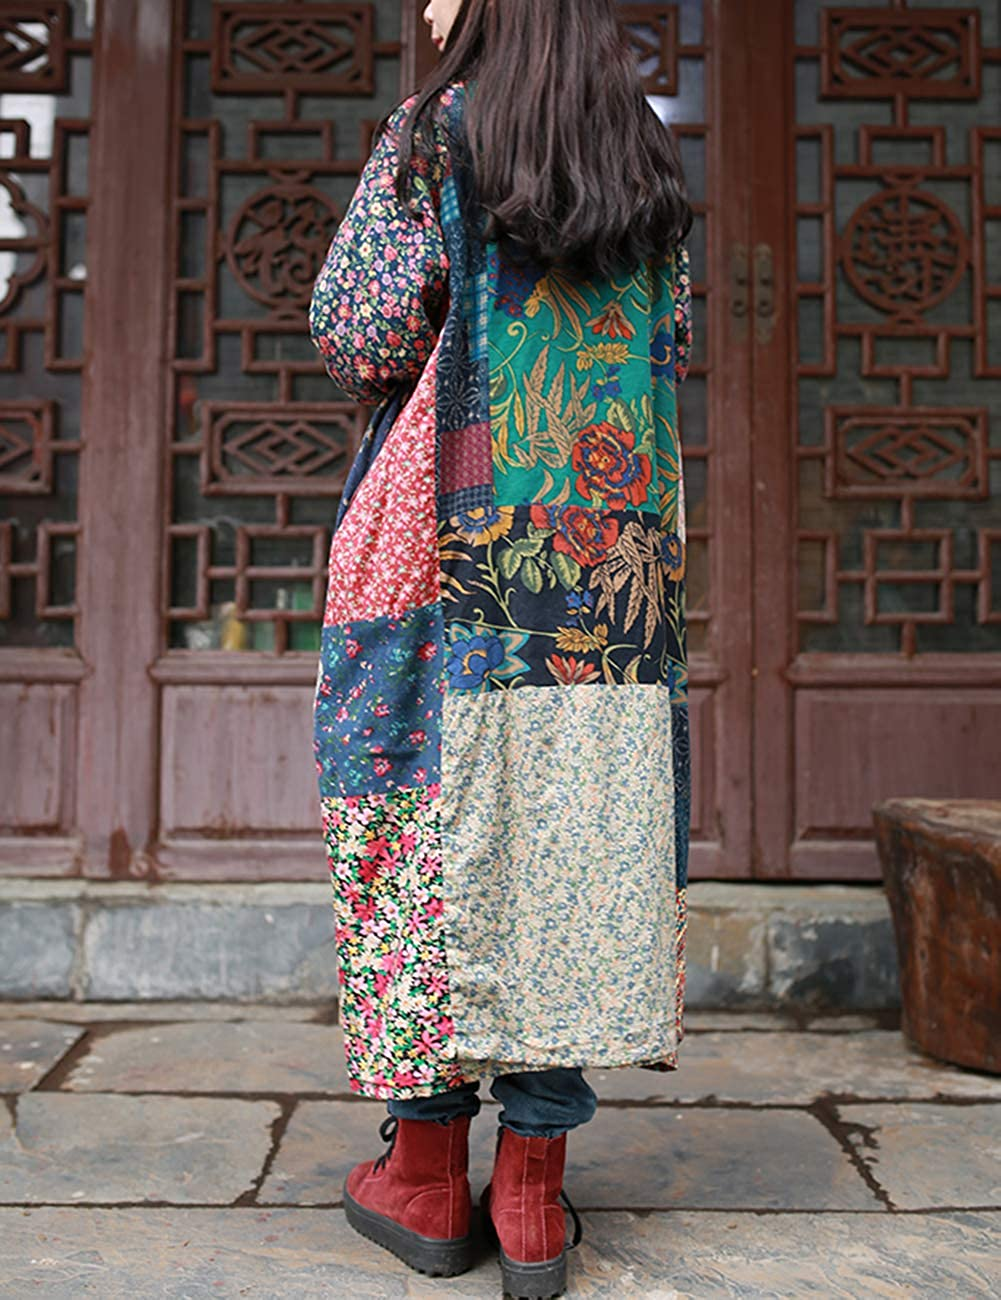 LZJN Women's Trench Coat Floral Print Jacket Chinese Style Patchwork Outwear